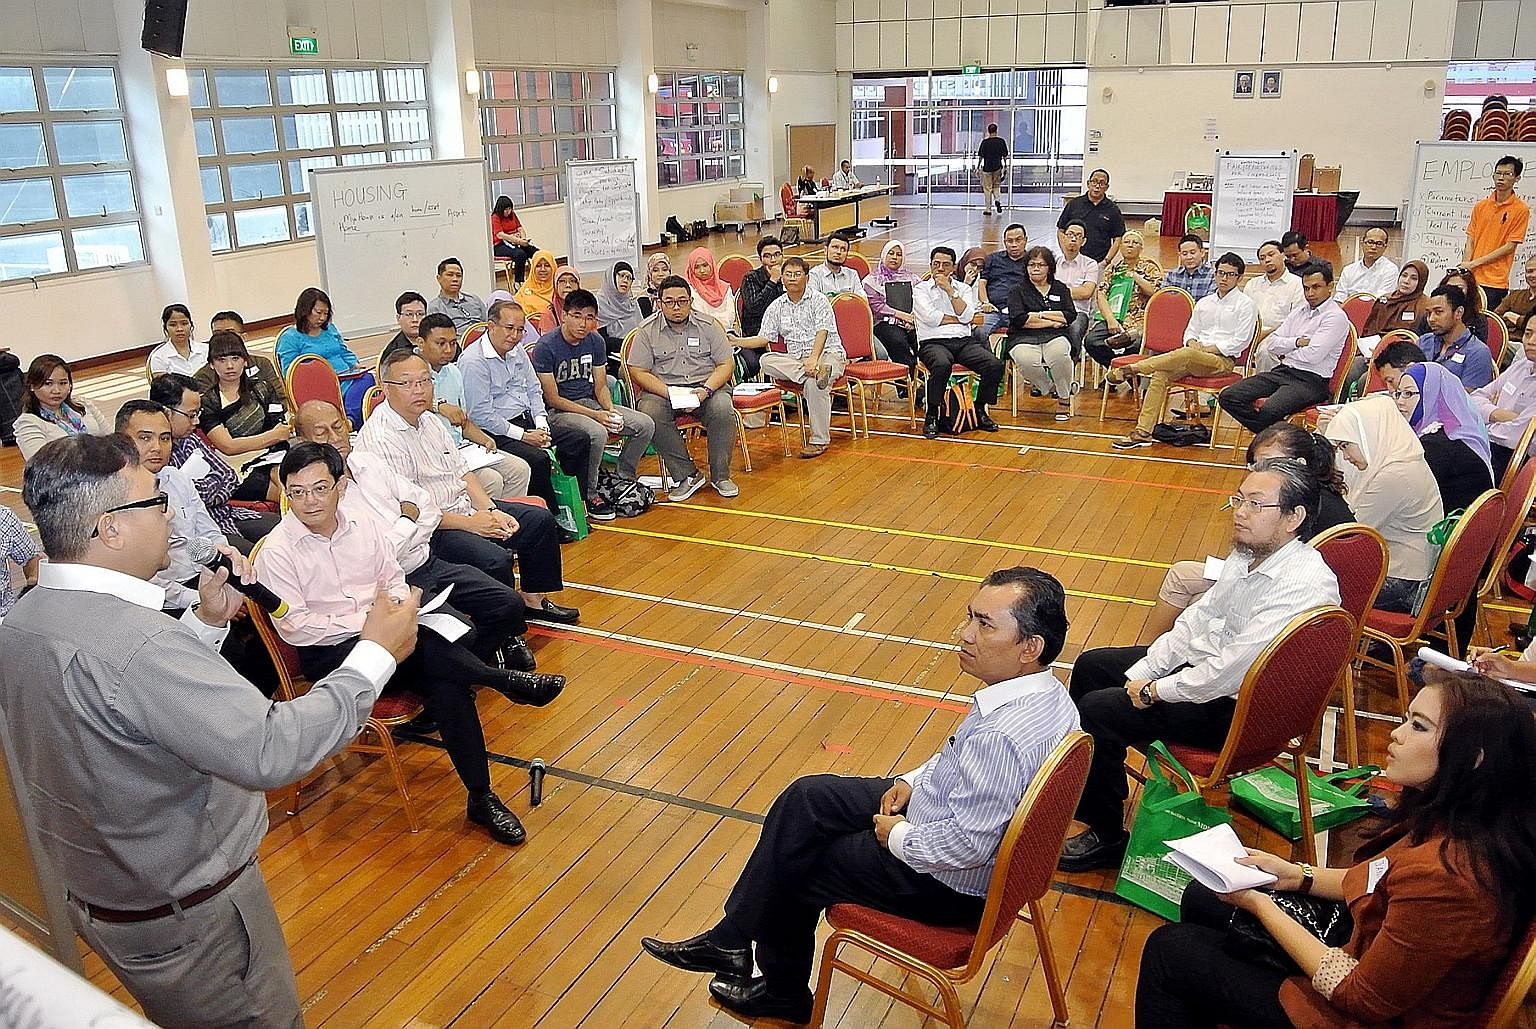 A participant speaking at an Our Singapore Conversation session in July 2013. Among those present were Mr Heng (left, seated). The minister said yesterday that he met many people during these sessions who cared deeply about issues and took proactive